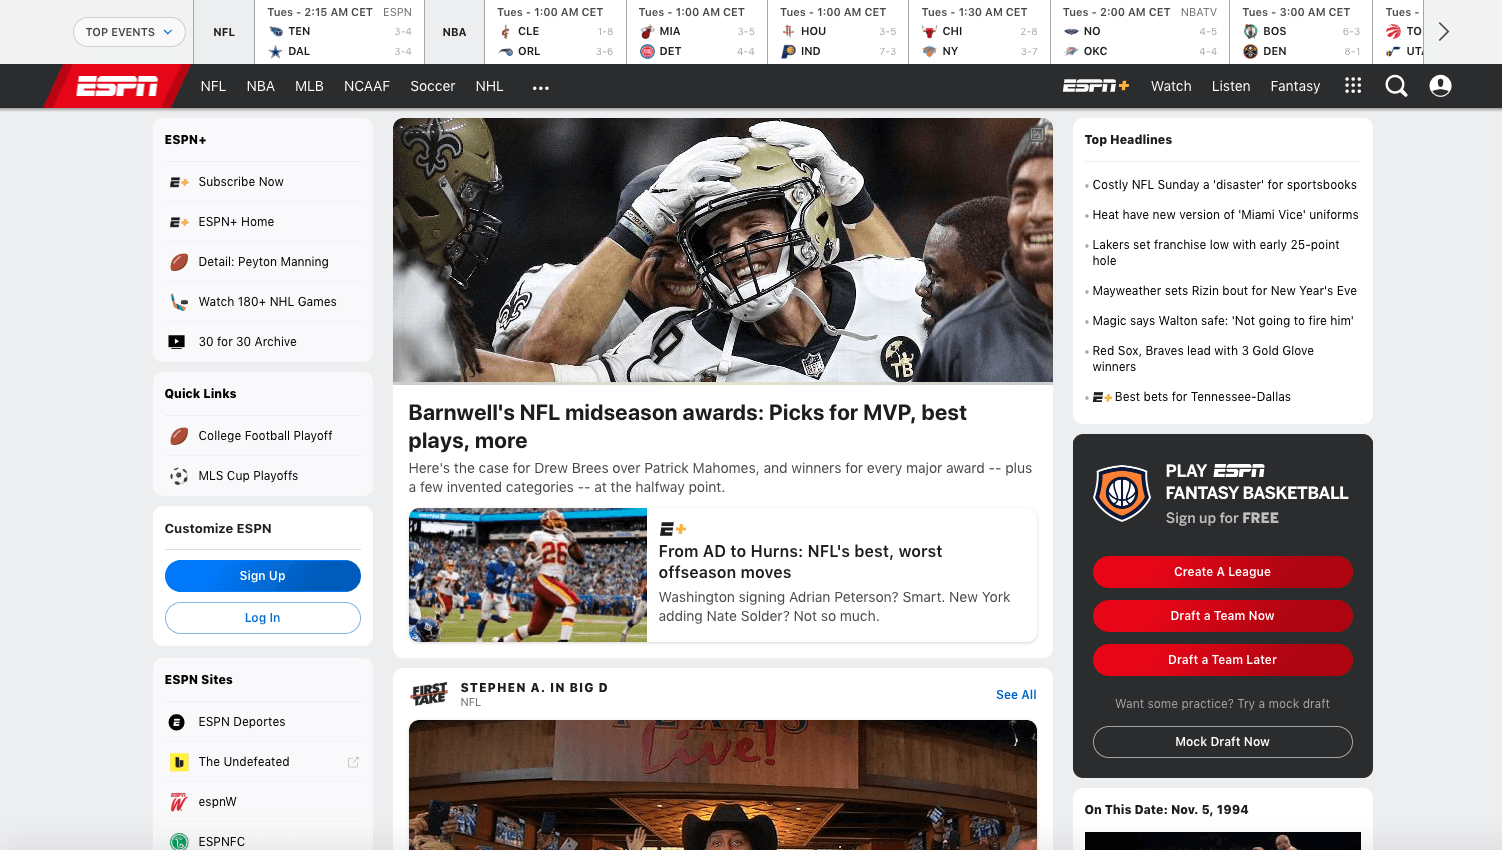 Example of a revenue stream with fantasy sports. Fantasy is an integral part of ESPN.